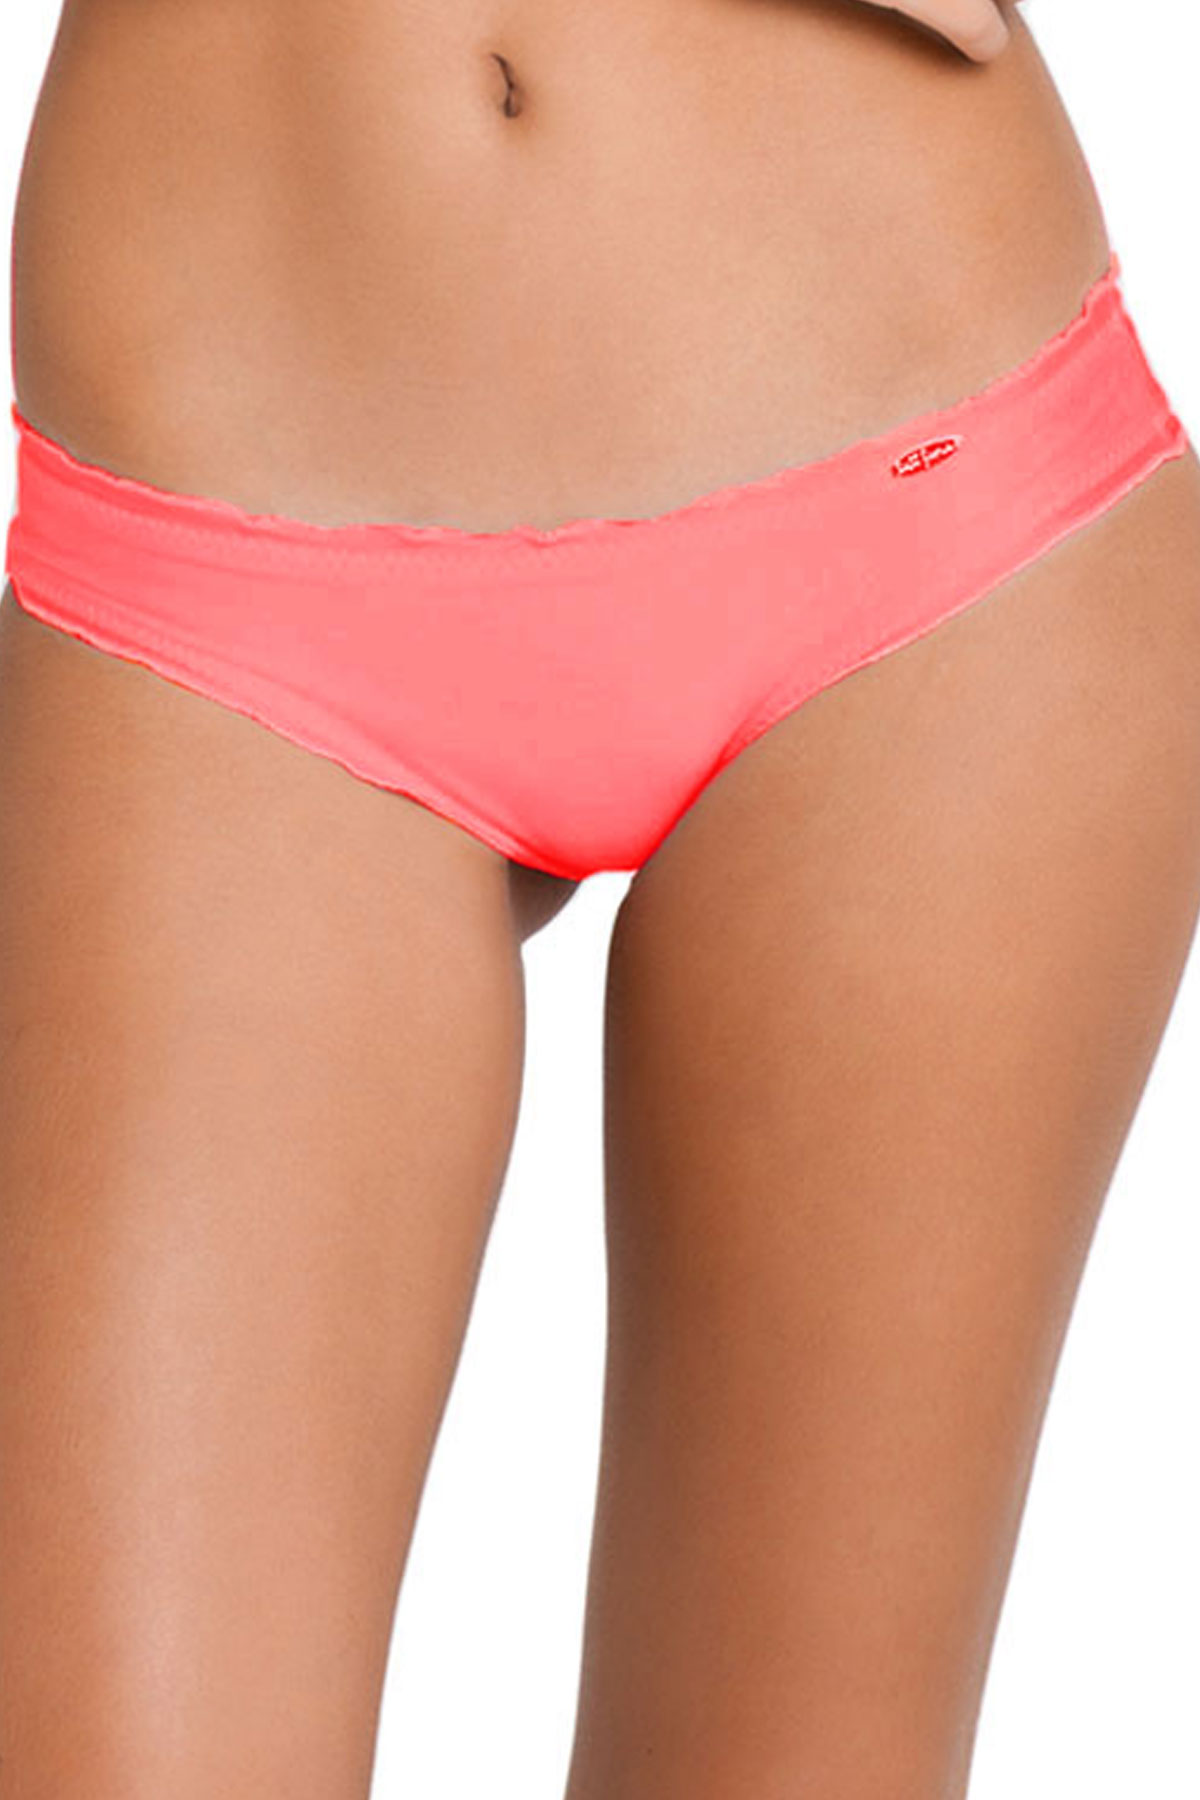 Ruched Hipster Bikini Bottom - Hot Mess 1